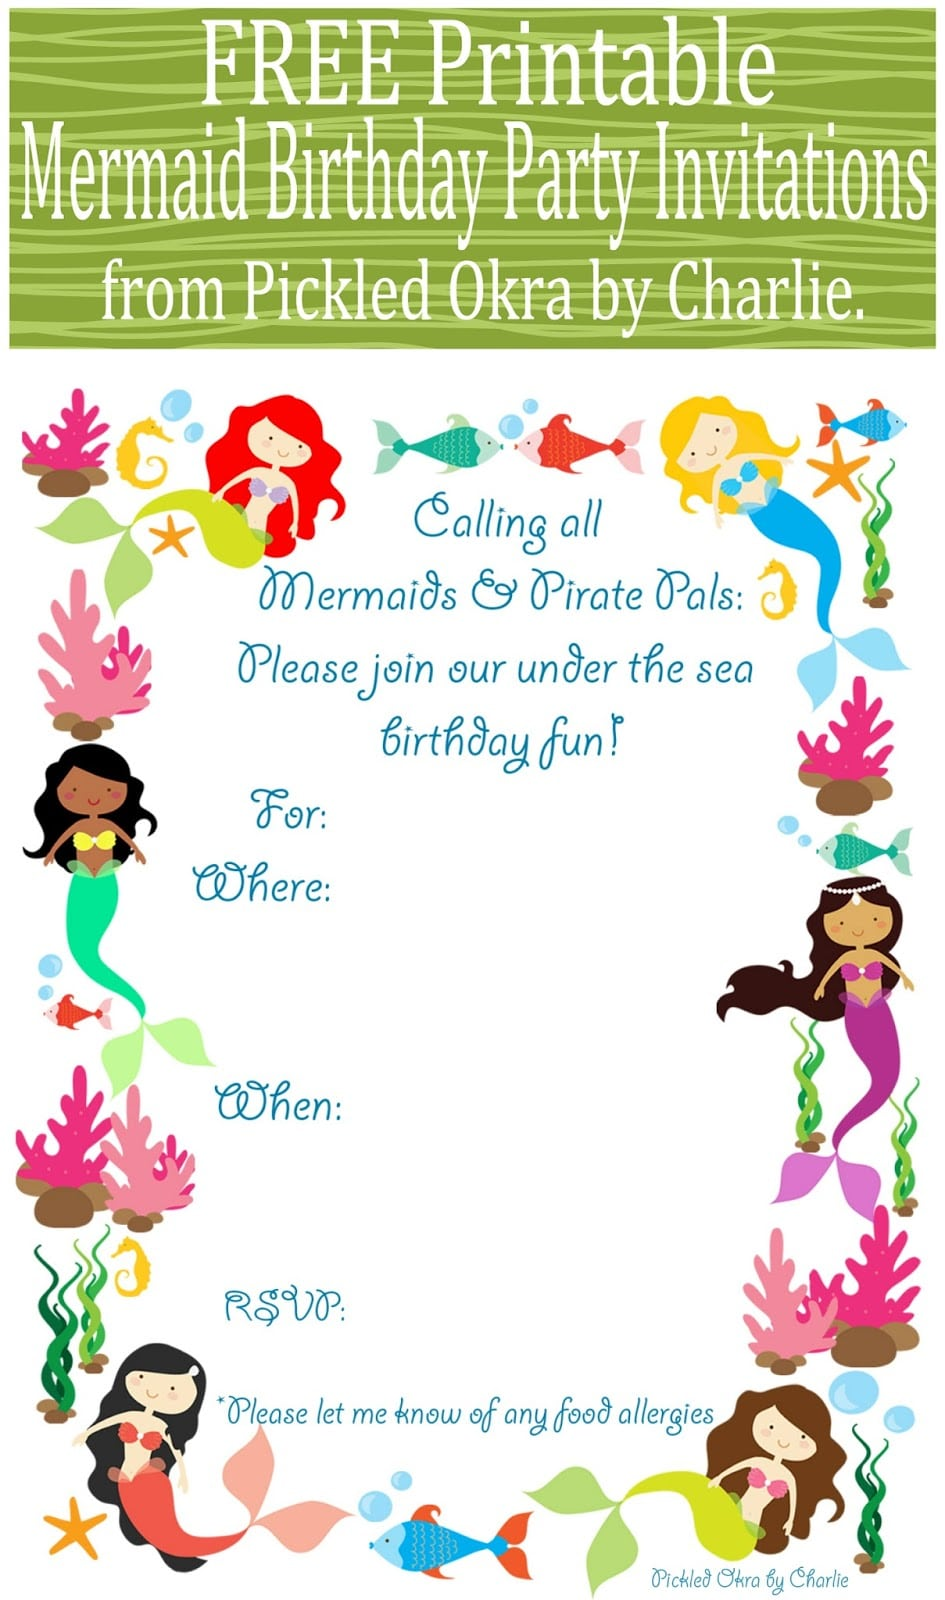 Free Printable Mermaid Birthday Invitation. Family Tree Template Google Docs. Missing Person Flyer. Bake Sale Flyer. Volleyball Poster Ideas. Tutoring Flyer Template. Church Financial Statements Template. Toy Drive Flyer Template Free. Graduation Suits For Guys